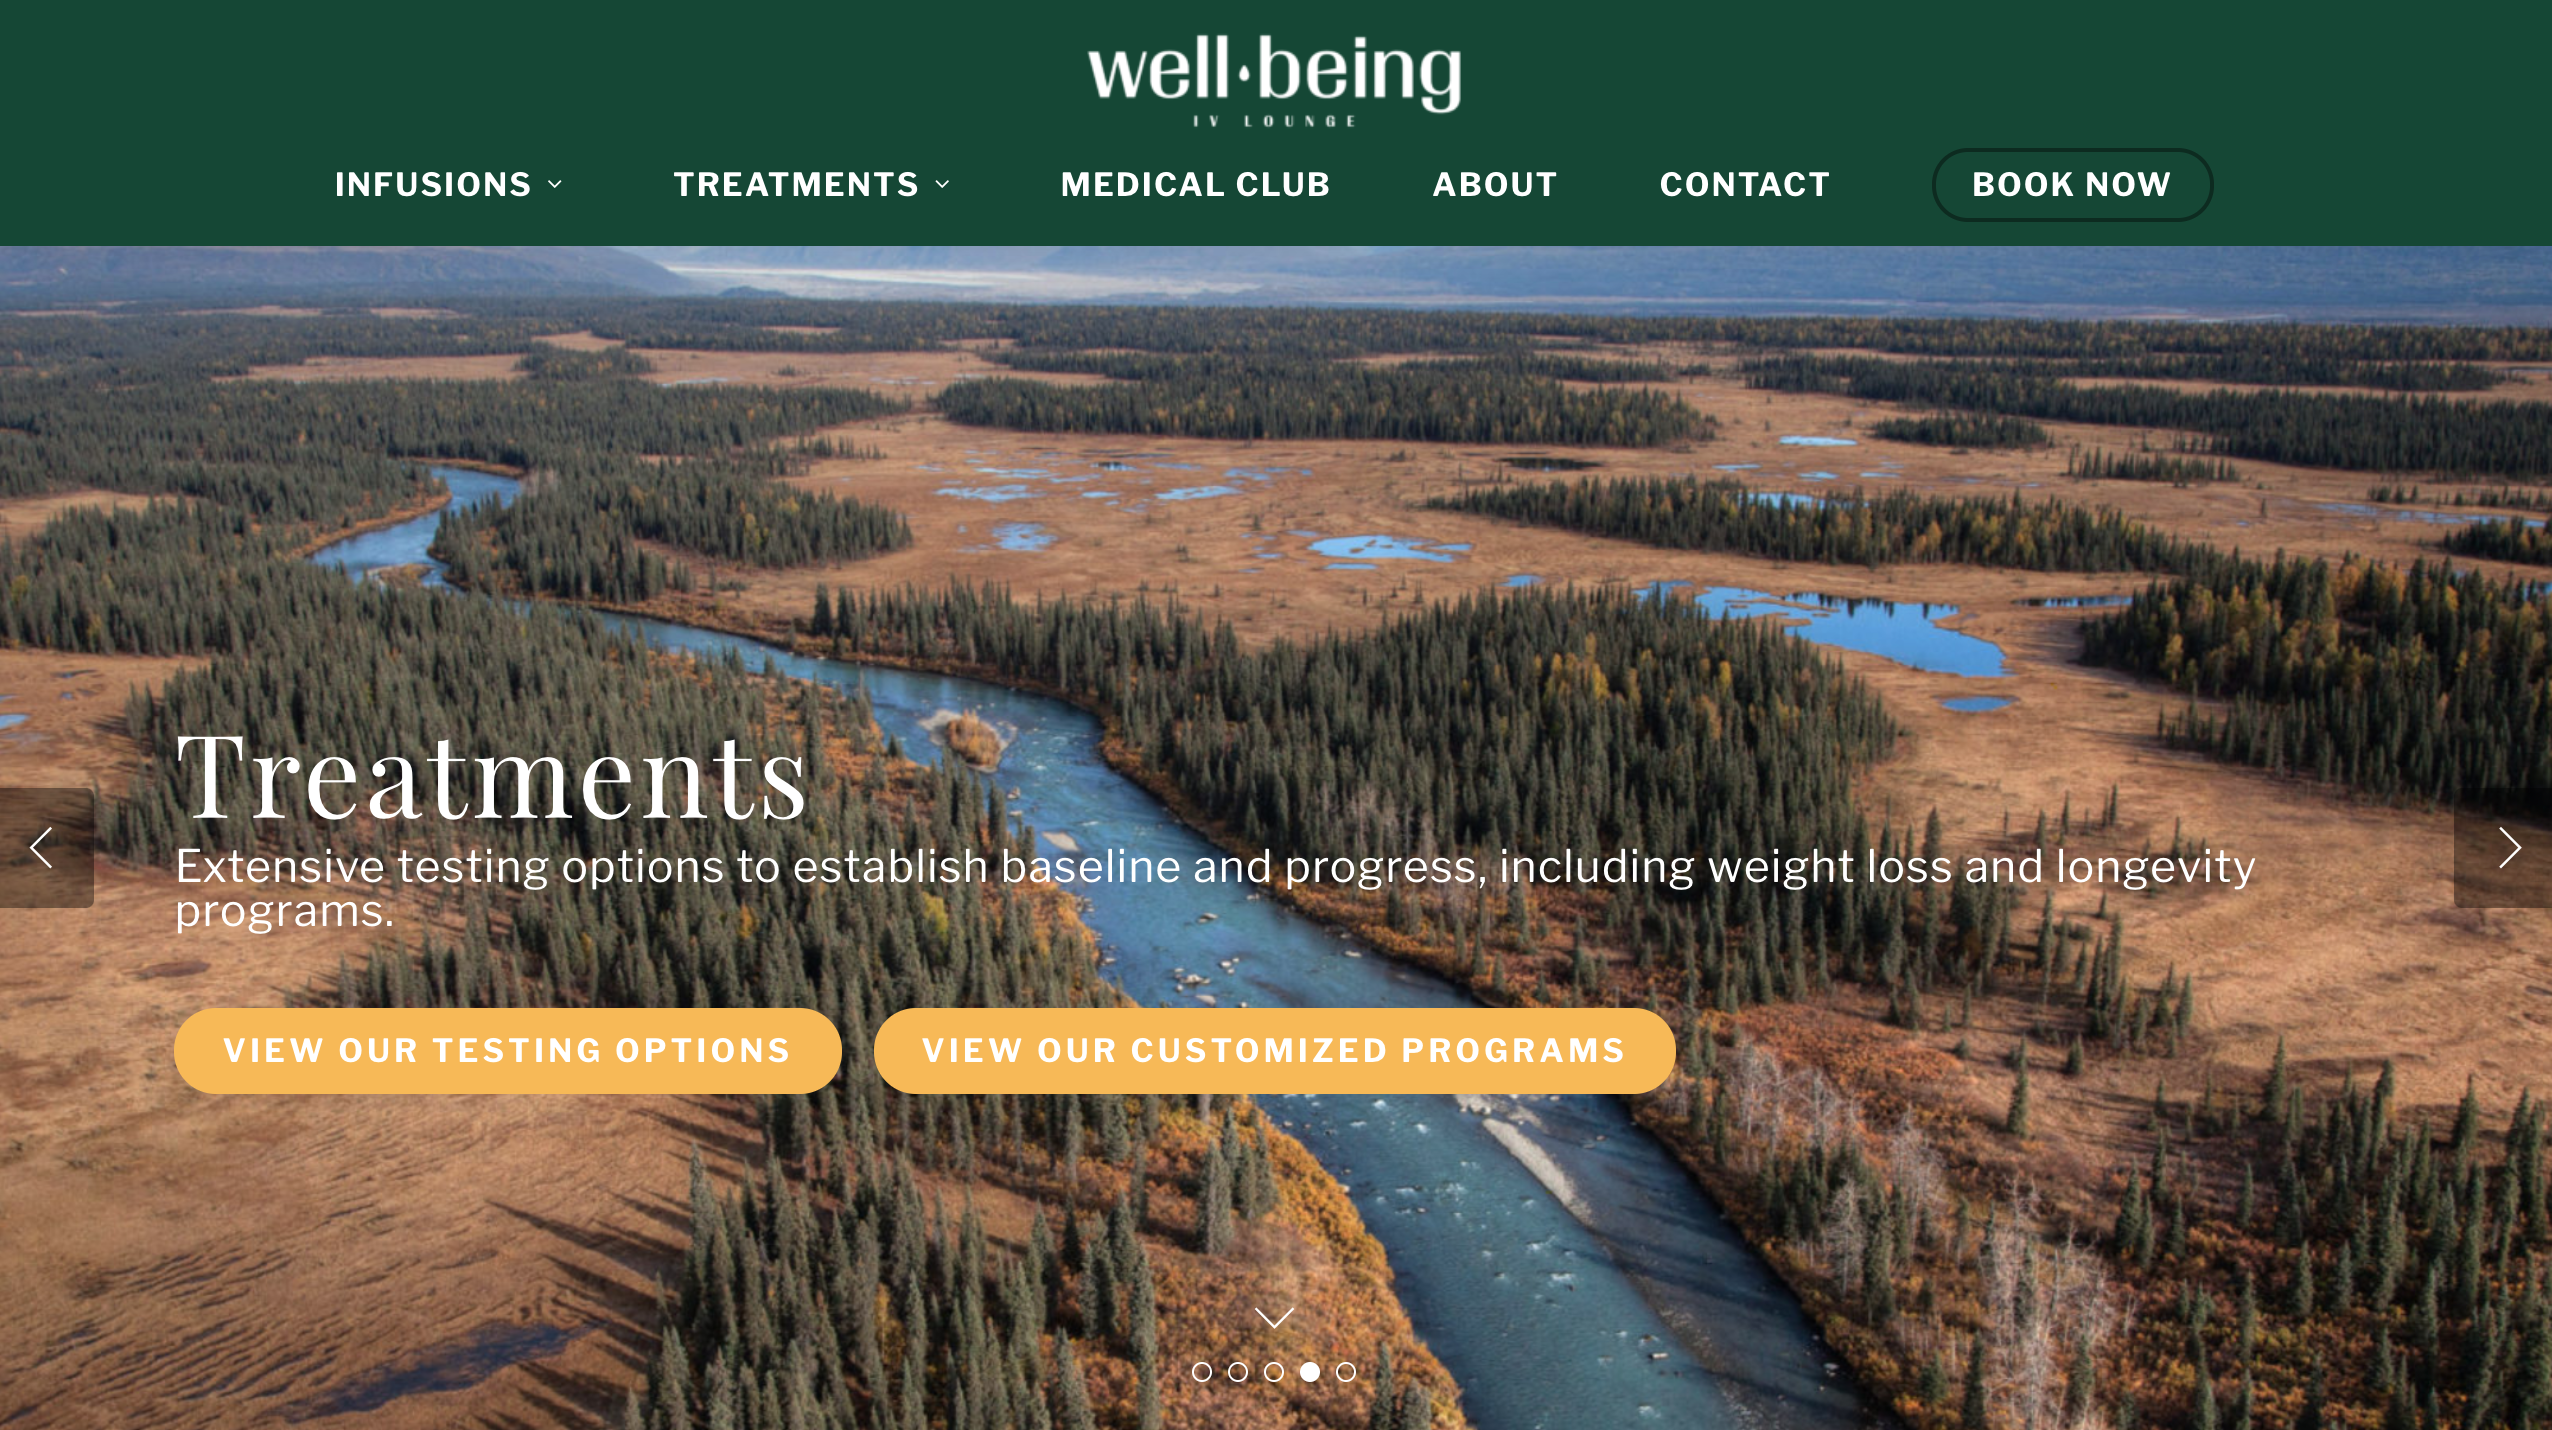 Well Being IV Lounge website screenshot